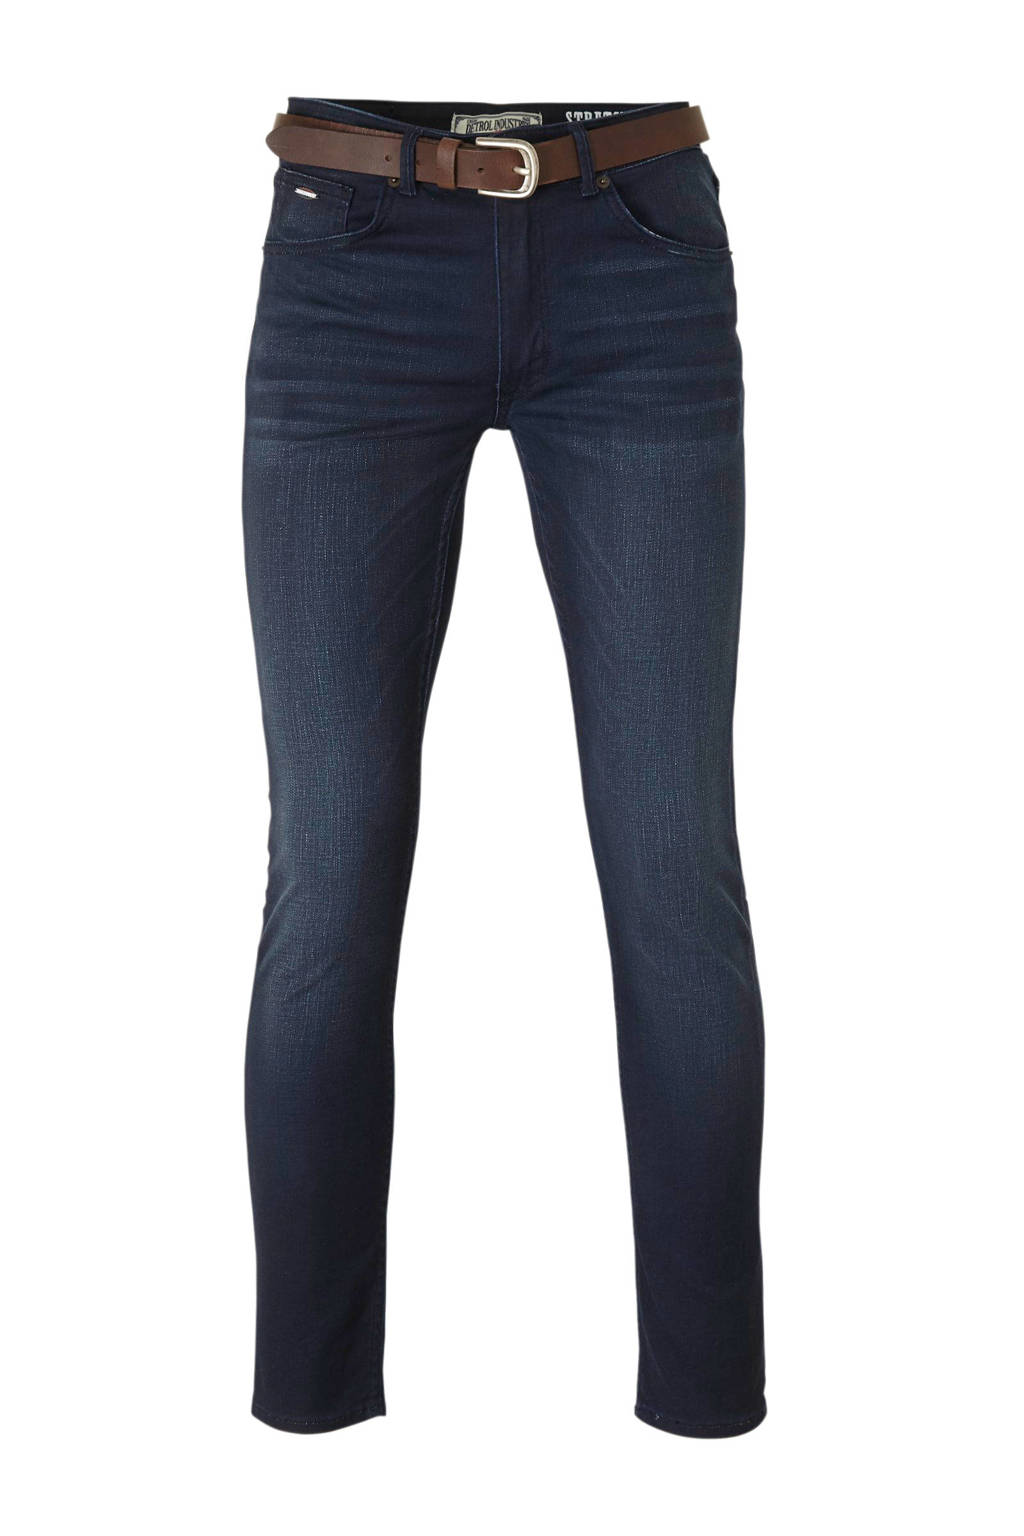 Petrol Industries slim fit jeans Seaham midnight blue, 5855 Midnight blue